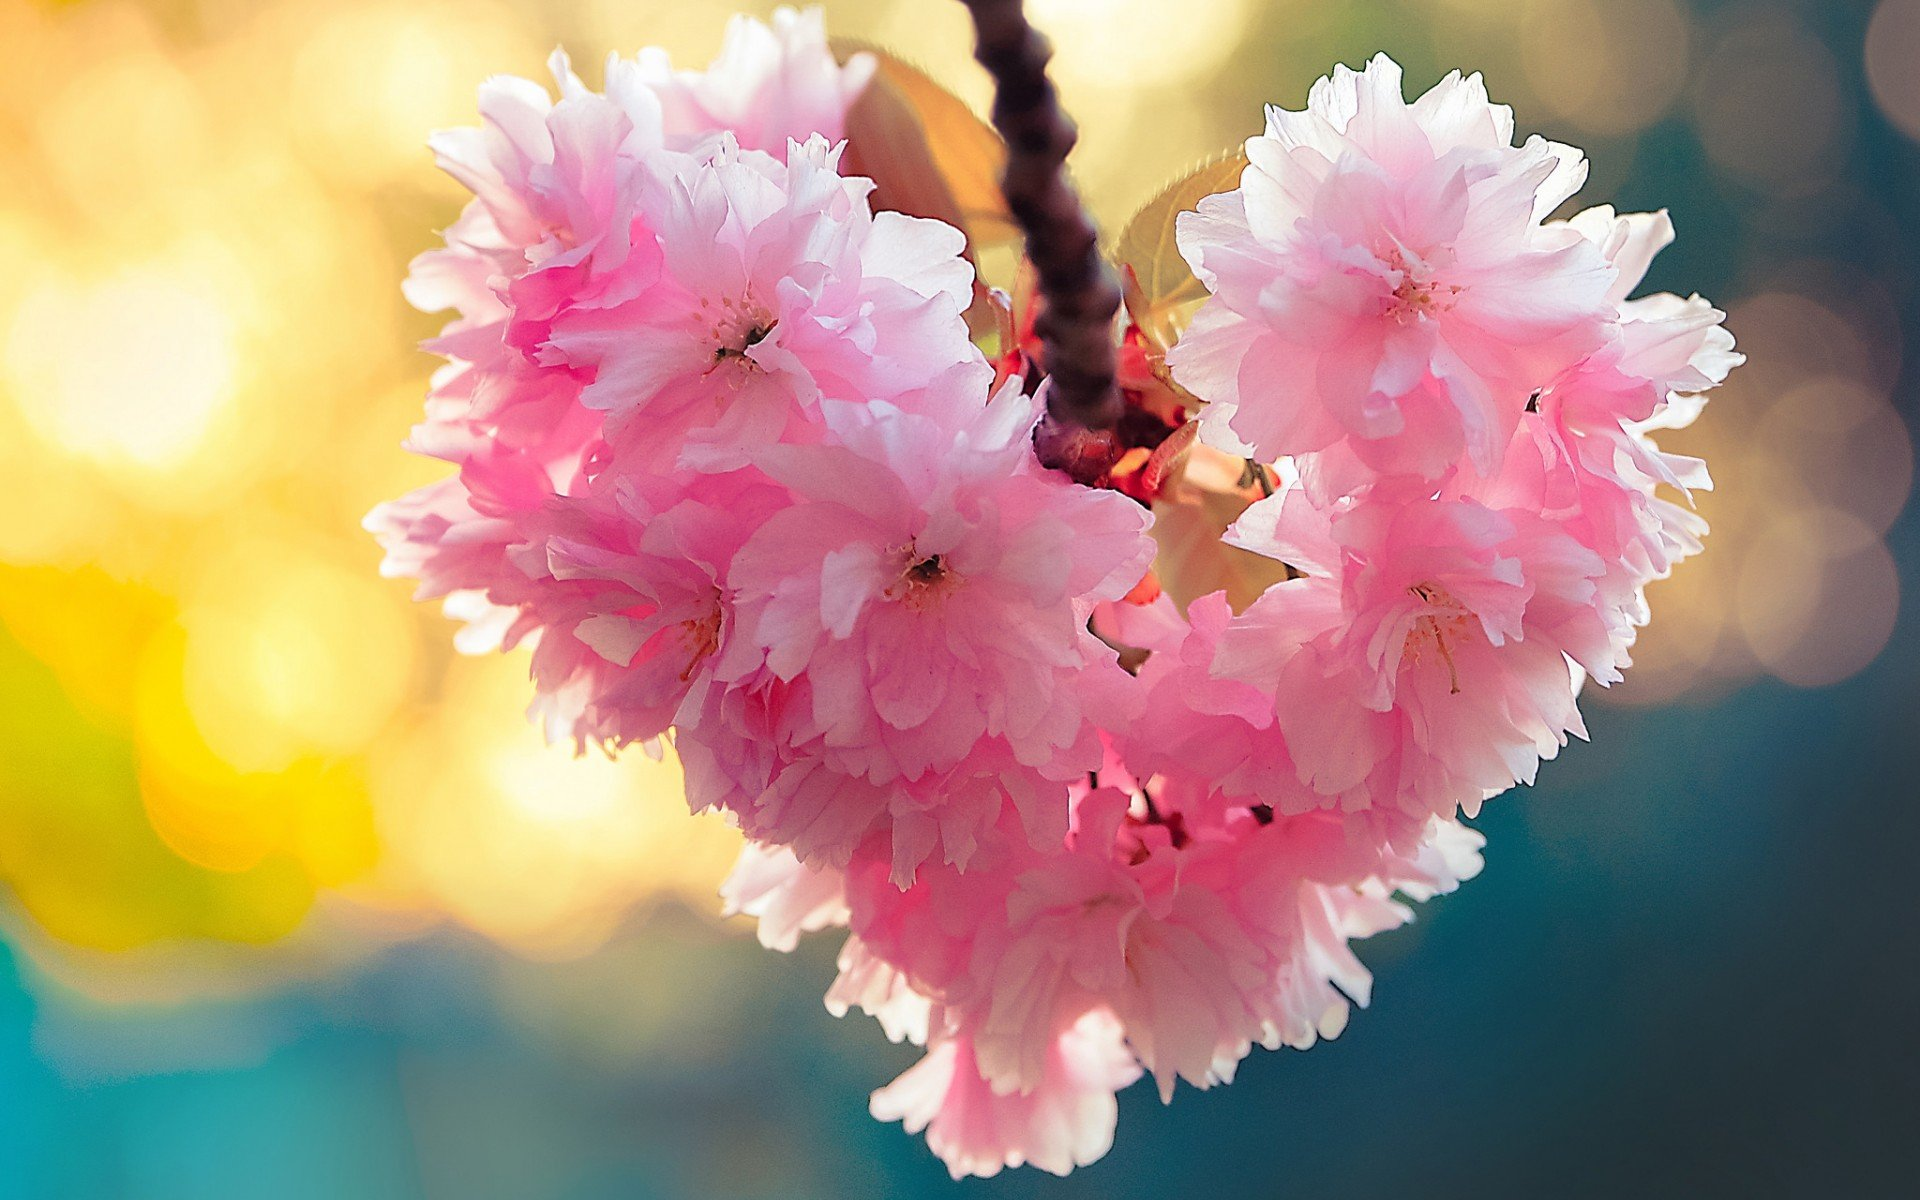 Nature Love Love Love Life Wallpapers Hd Desktop And: Heart Bloom Love Heart Flowers Nature Spring Wallpaper